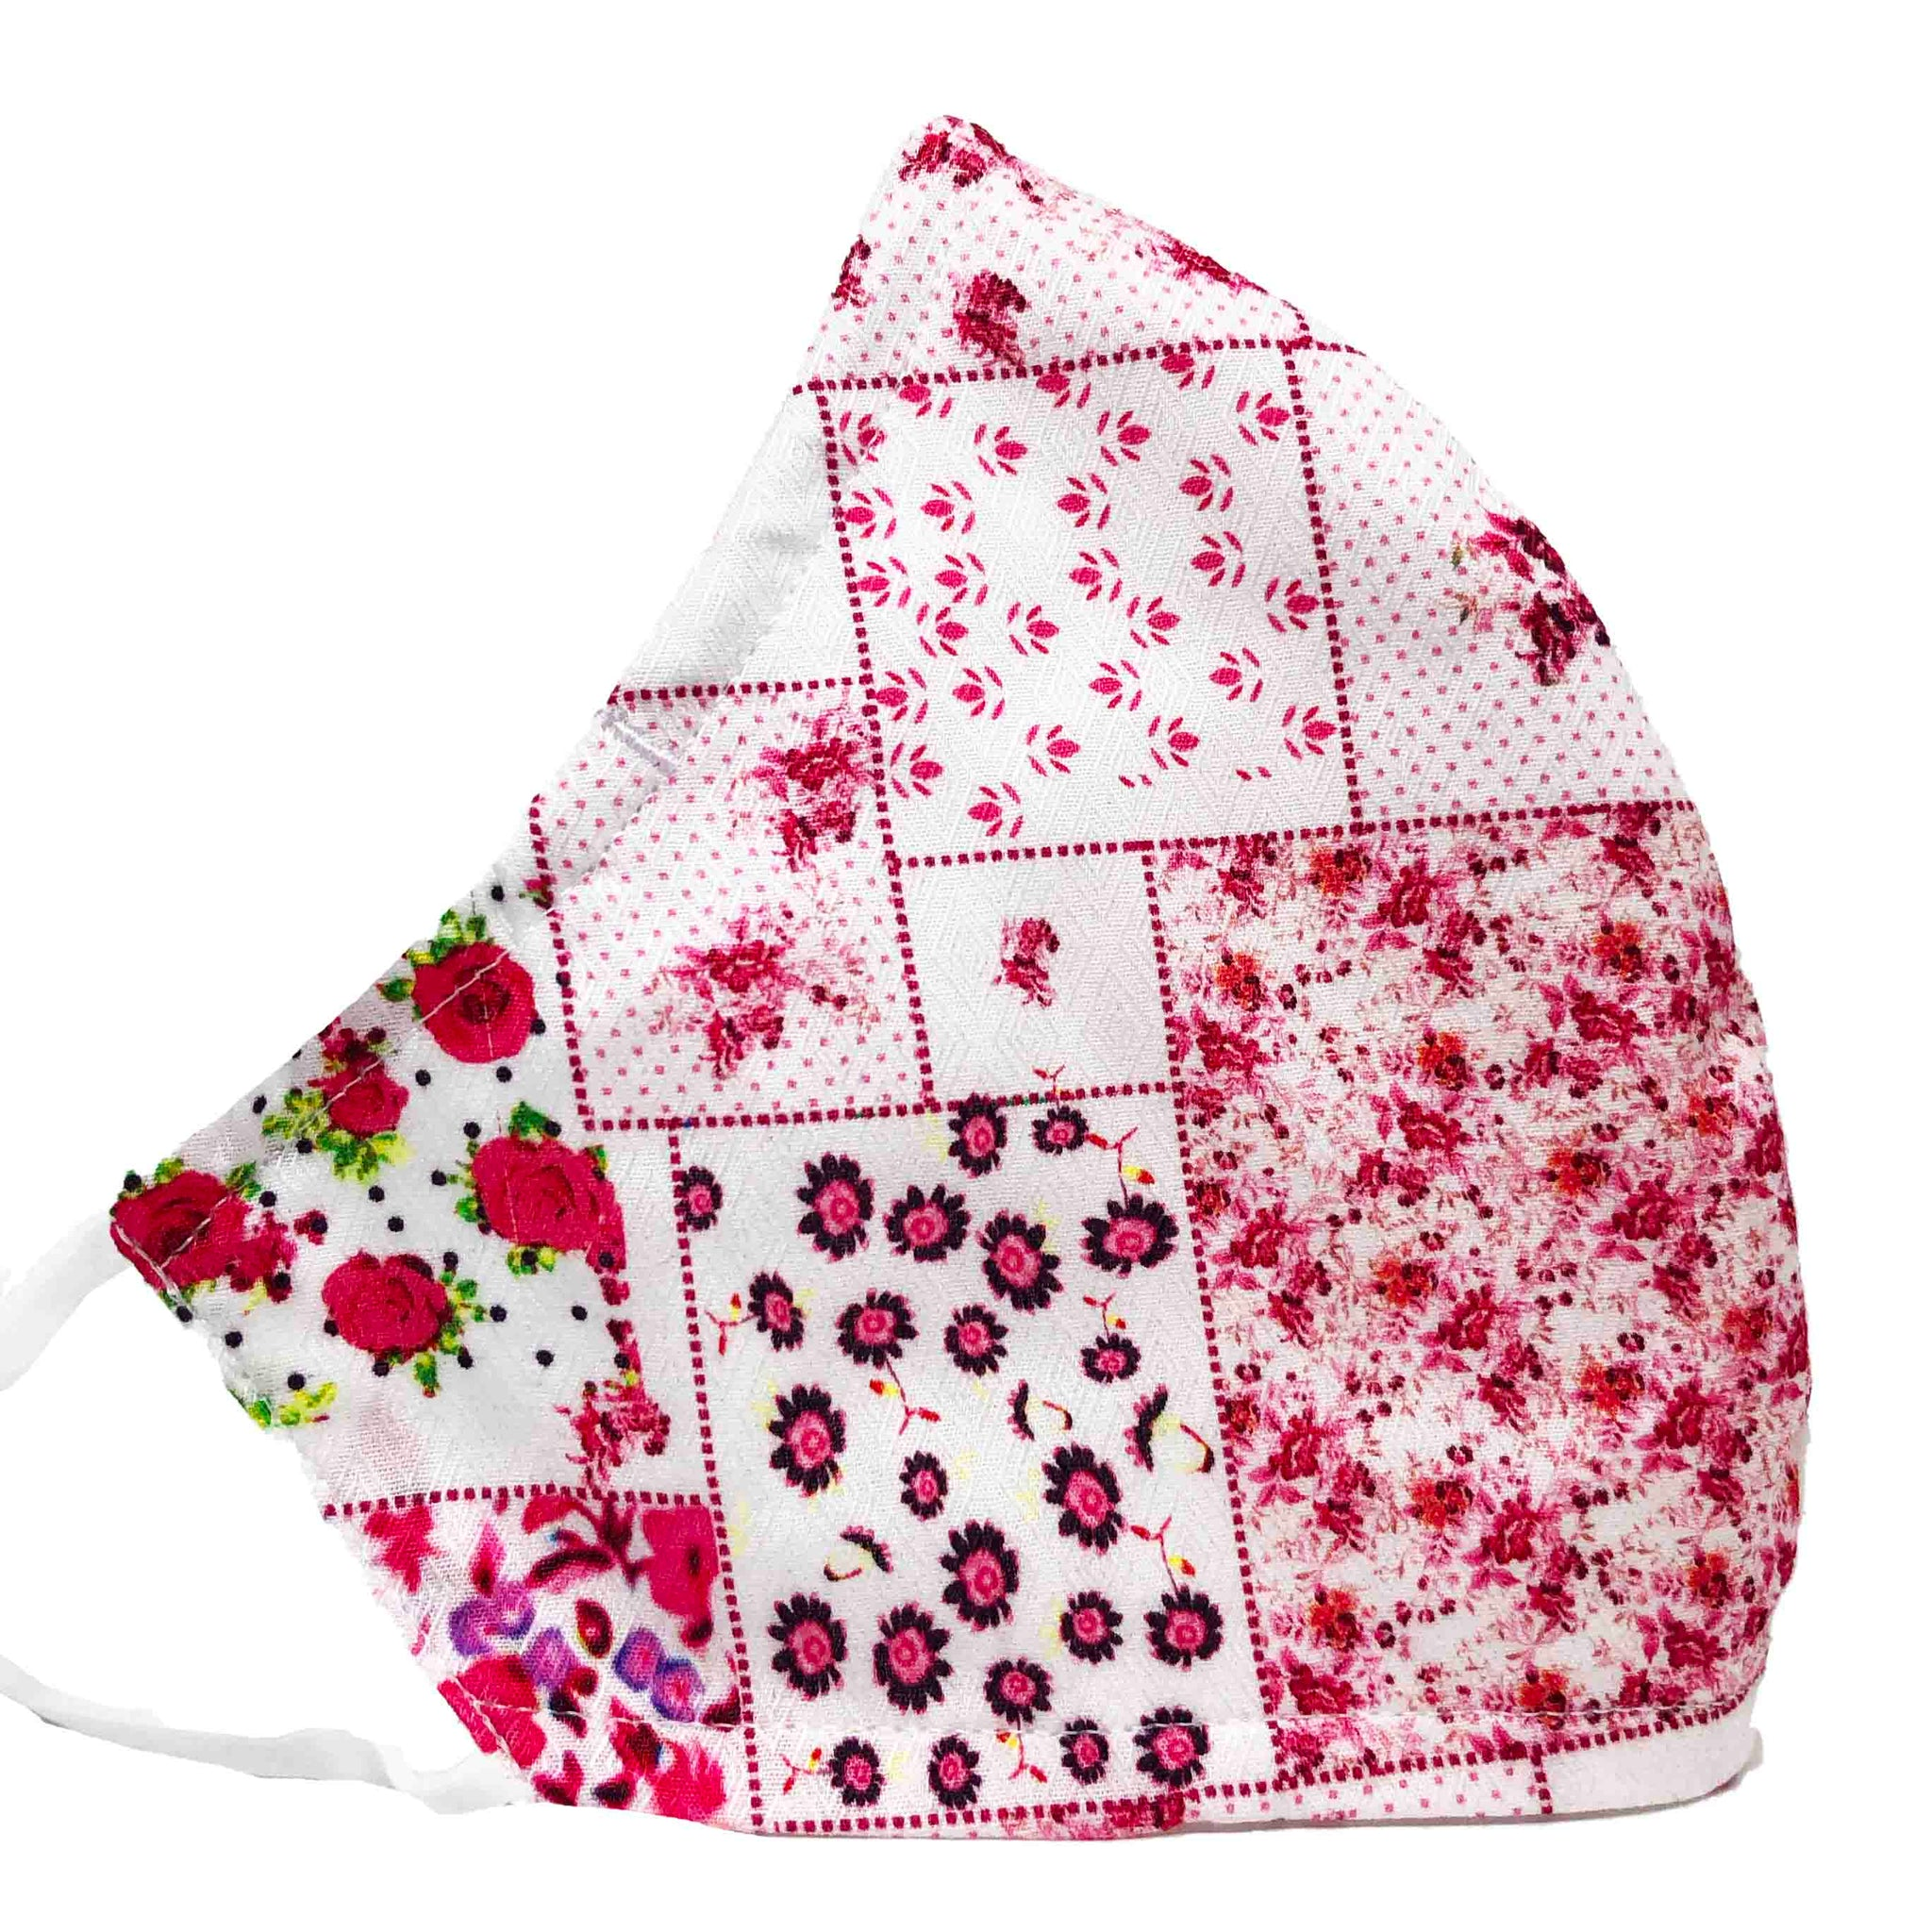 100% Cotton Triple Layer Adjustable Mask with Built-In Nose Wire & Filter Pocket - La Vie En Rose